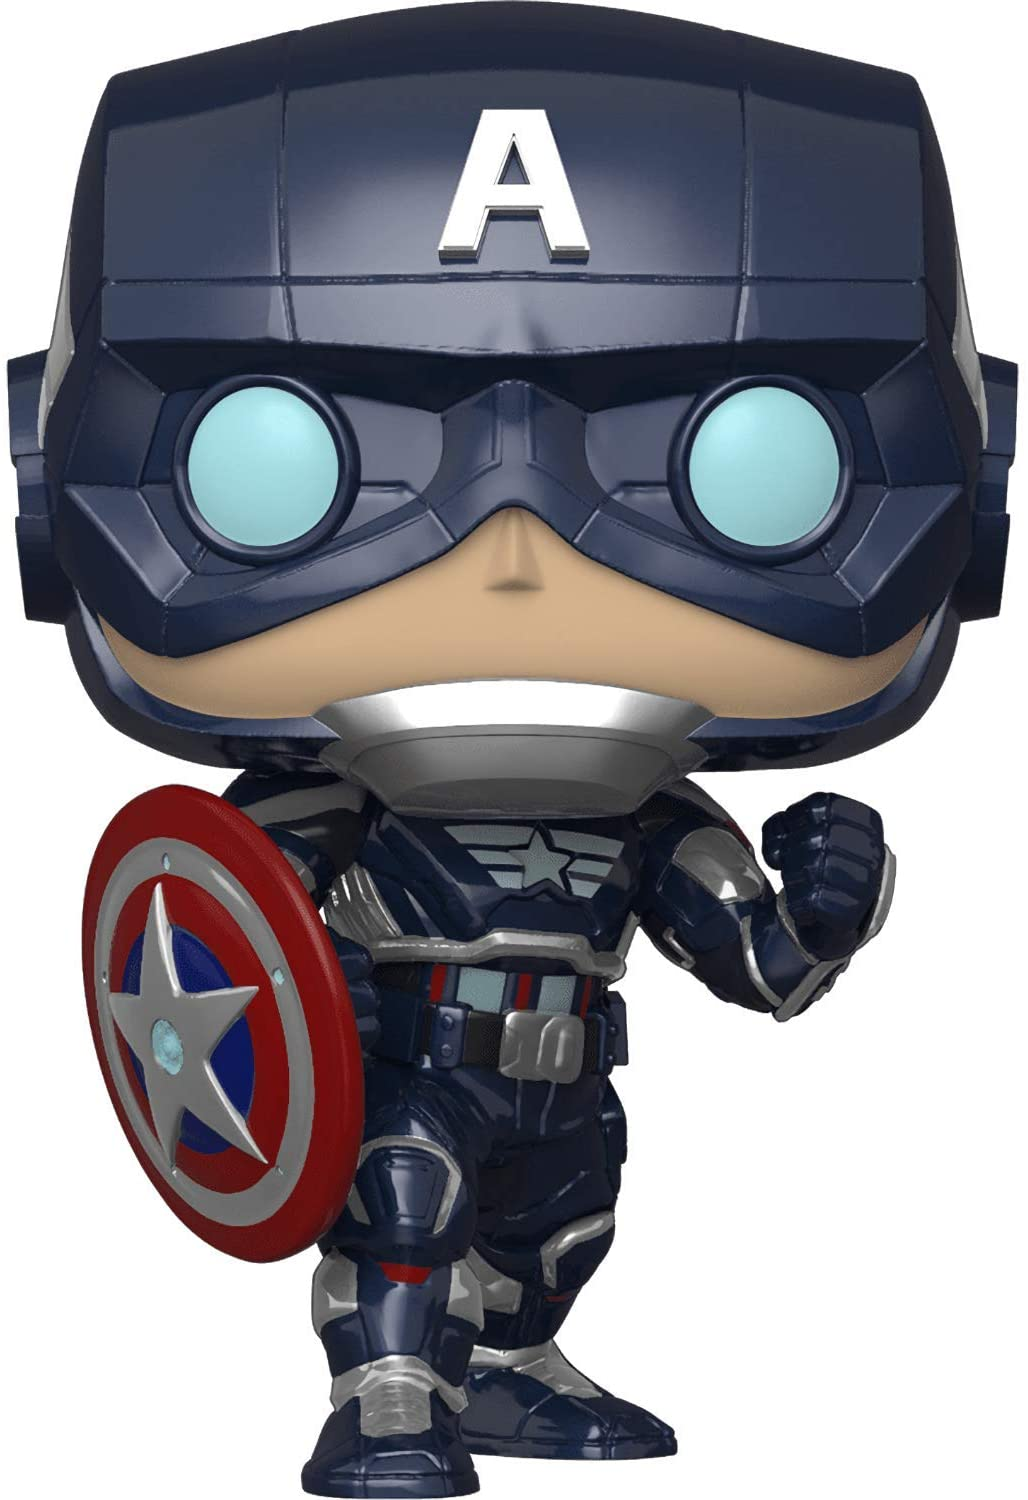 Фигурка Funko POP! Капитан Америка из игры Marvel Avengers (Captain America Game) изображение 2